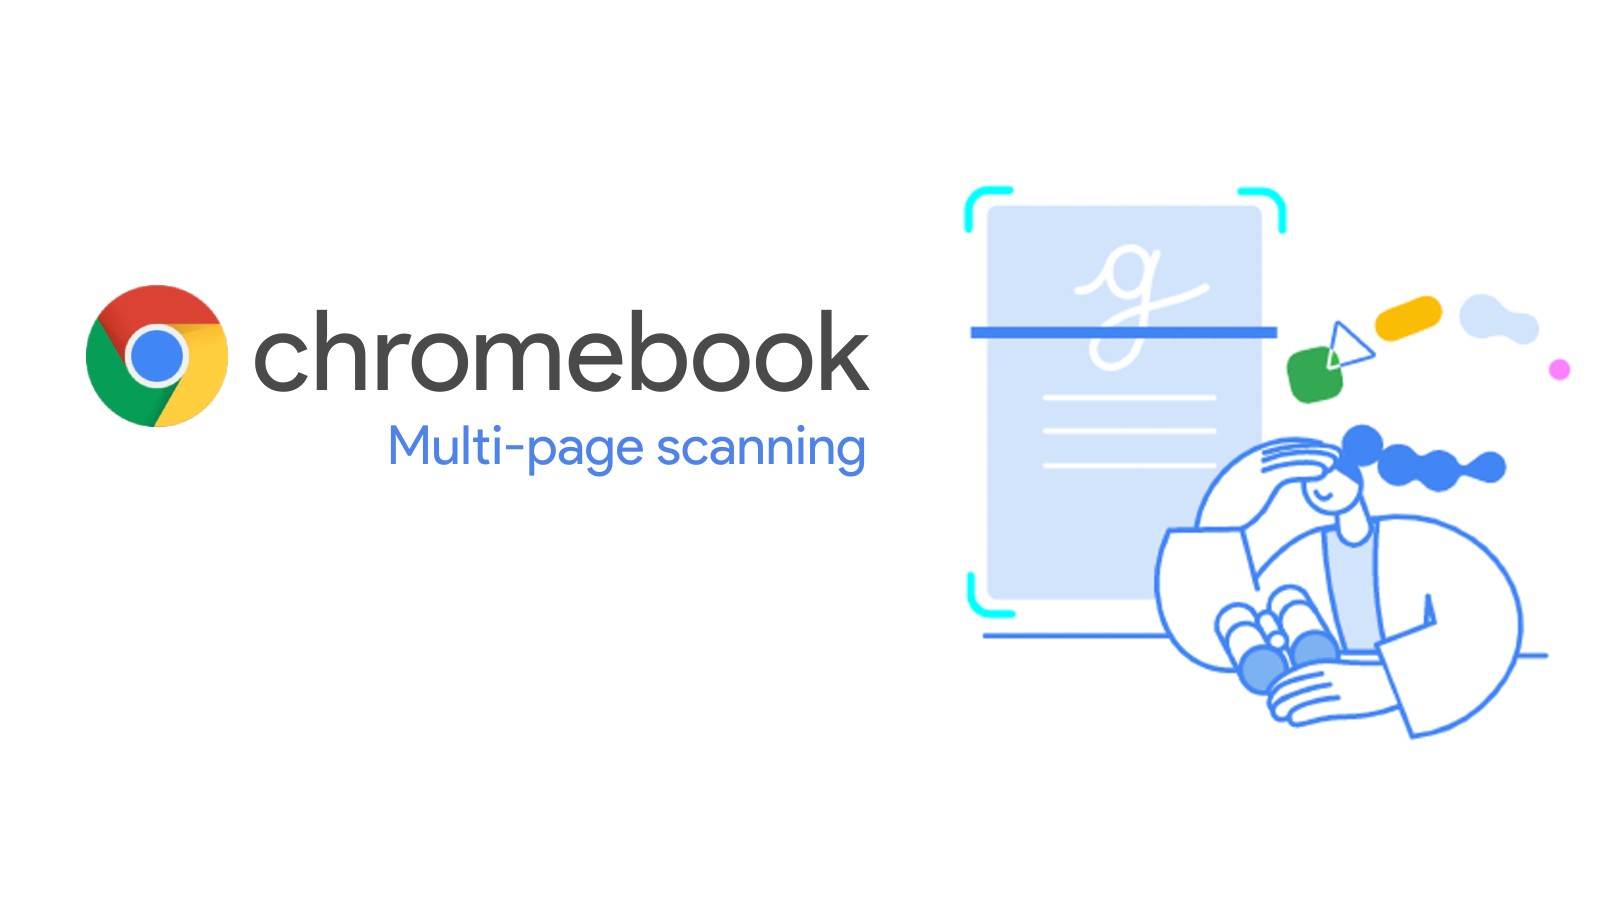 You'll soon be able to create one unified PDF from multiple page scans on your Chromebook